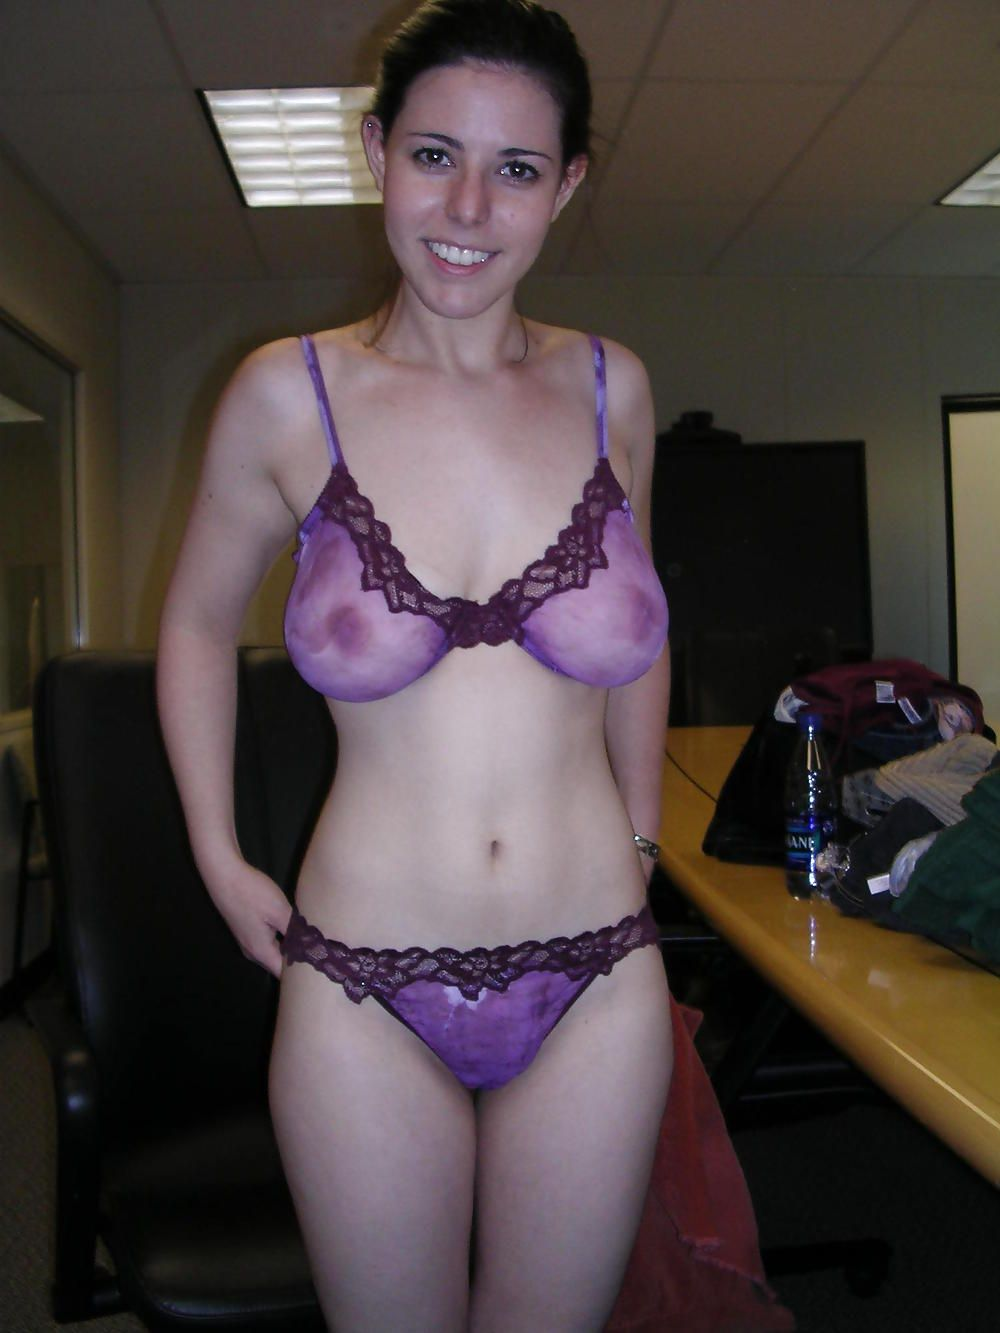 Through amateur bra see